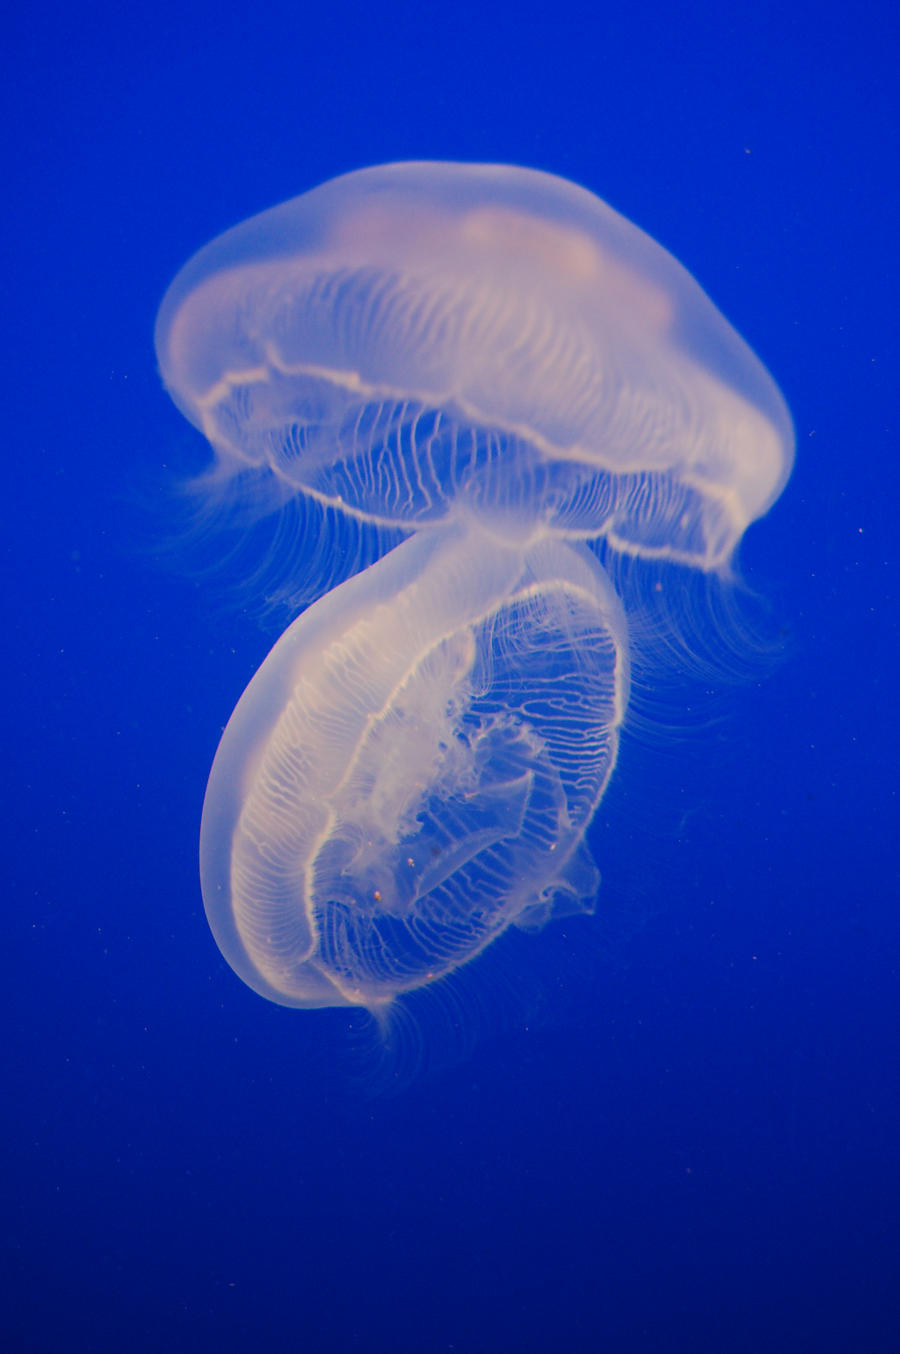 Stock 464 - Jellyfish by pink-stock